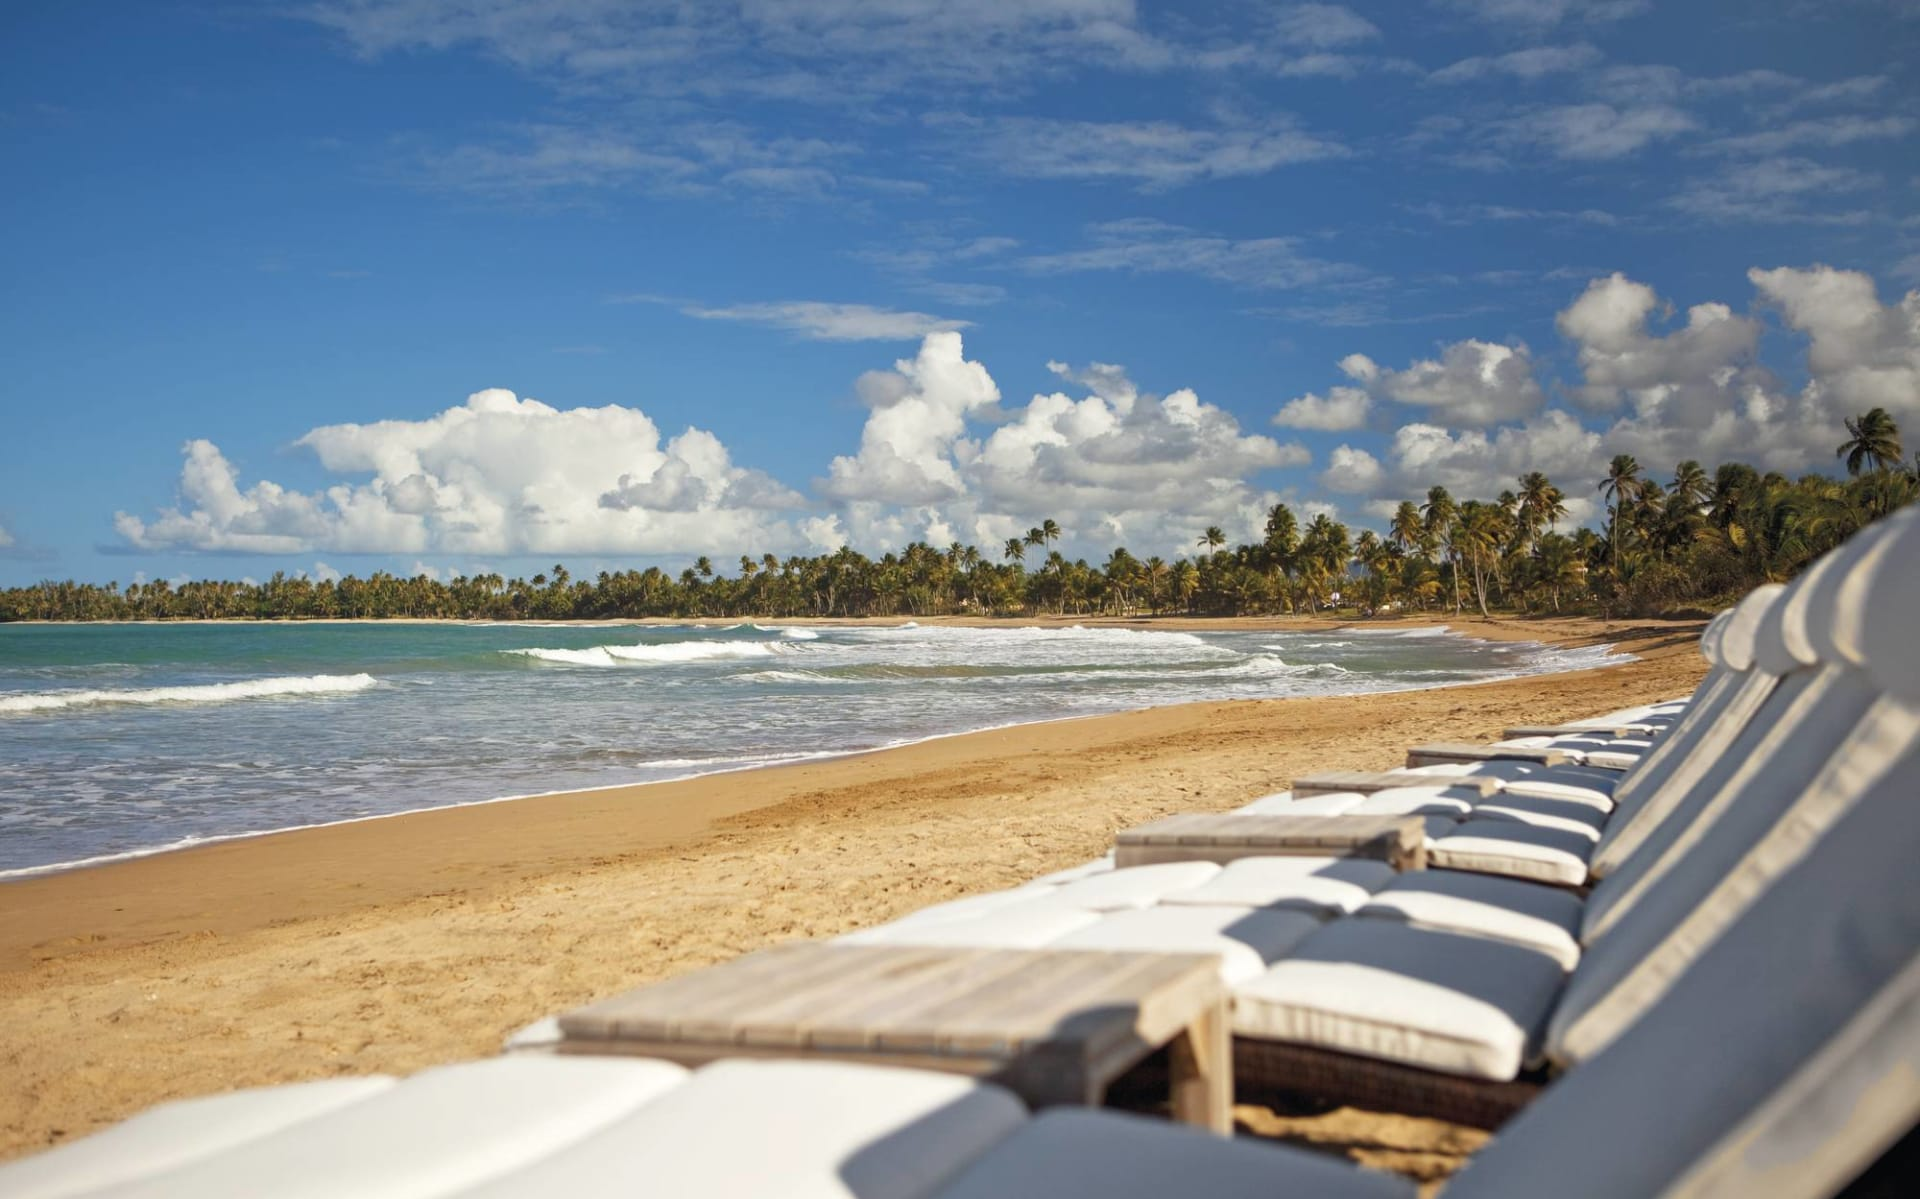 St. Regis Bahia Beach Resort in San Juan: St. Regis Bahia Beach Resort Puerto Rico Beach - Bahia Beach c Hotel (1)